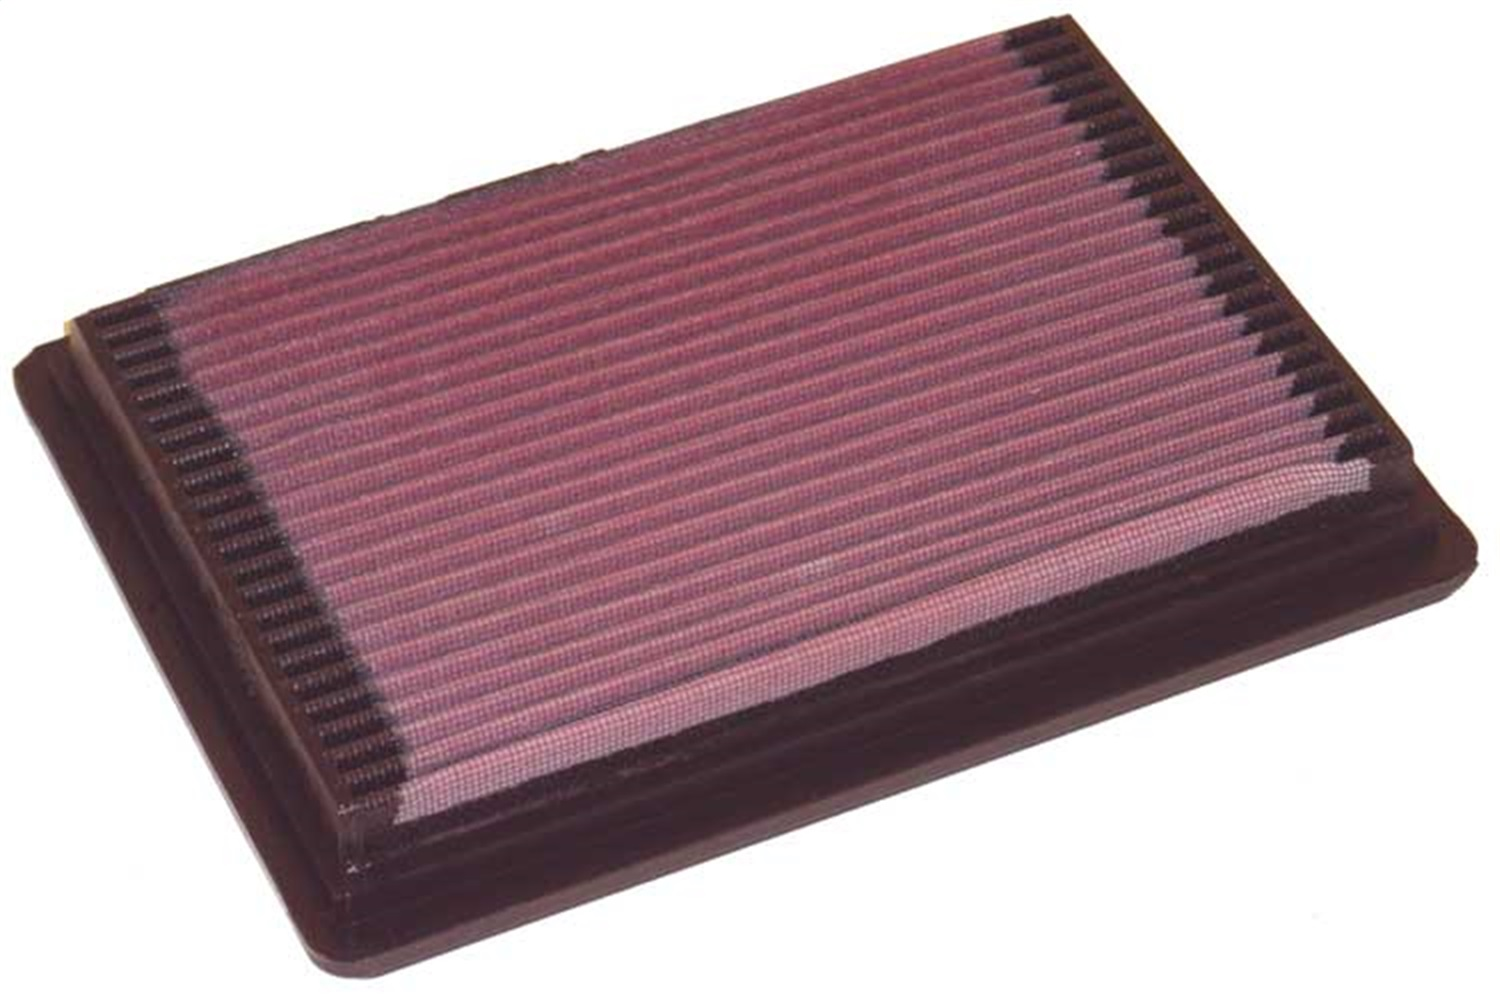 K&N Filters 33-2107 Air Filter Fits 92-99 Sable Taurus Tempo Topaz 33-2107